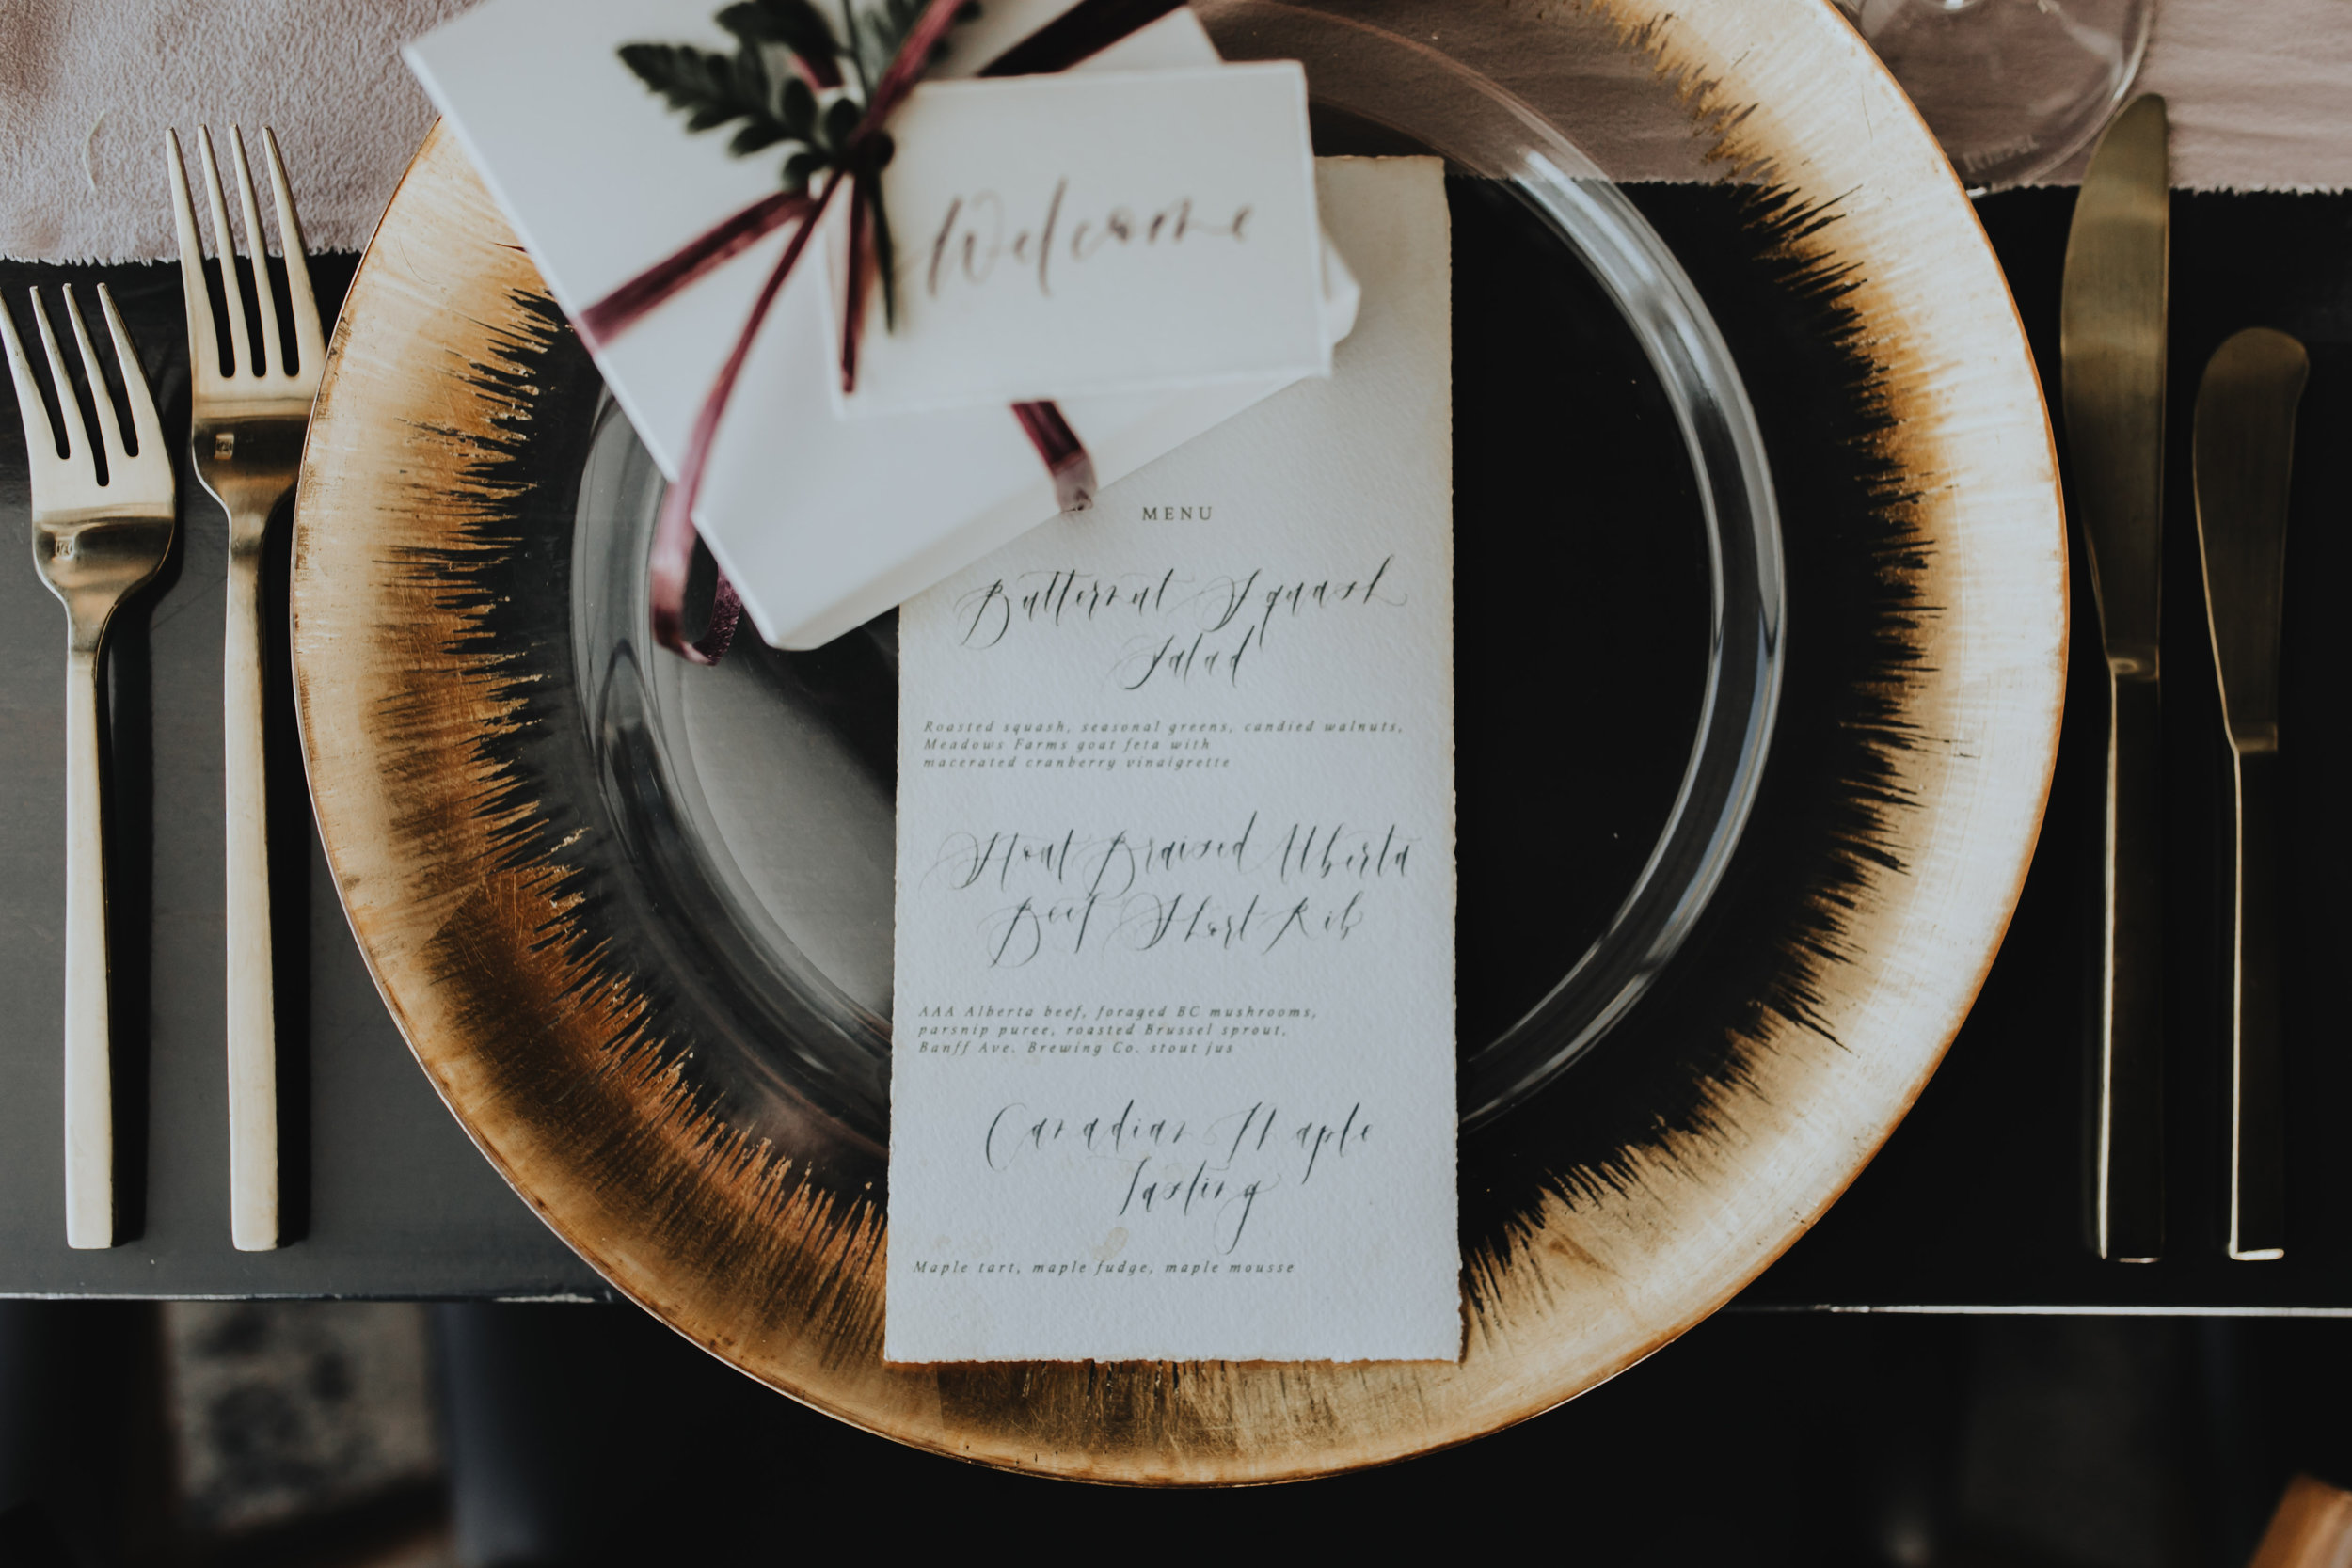 8 Tips for Choosing Your Wedding Photographer // Tips from the Pros - 2020Photography on The Bronte Bride Blog